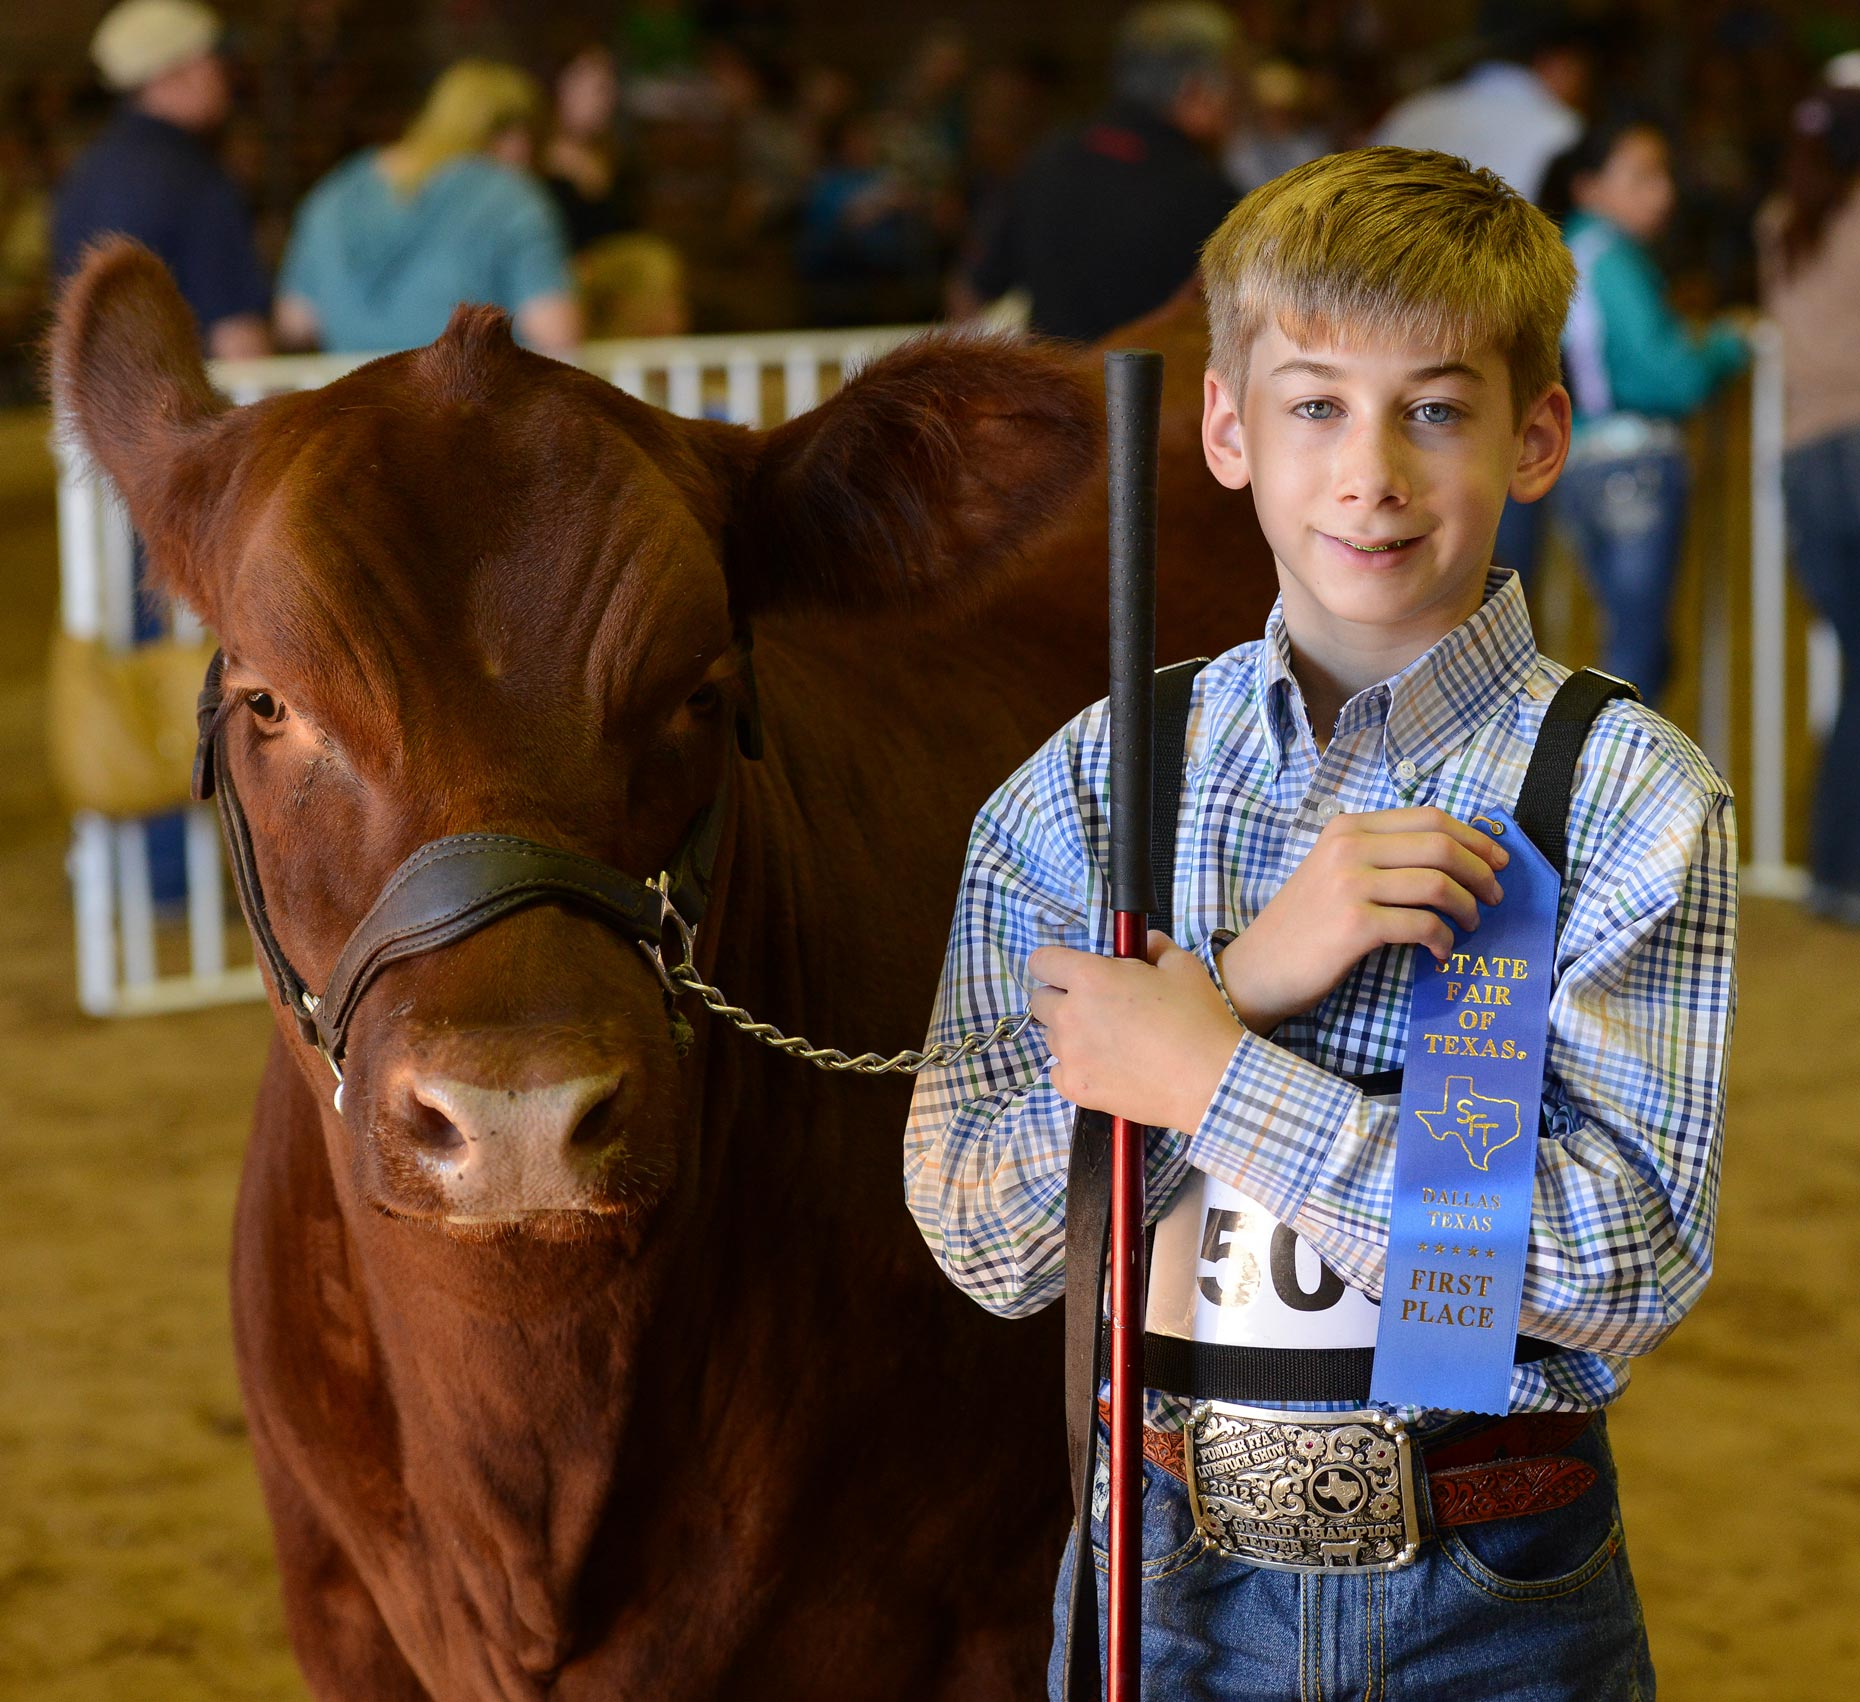 Youth with livestock at The State Fair of Texas. Photography by Kevin Brown